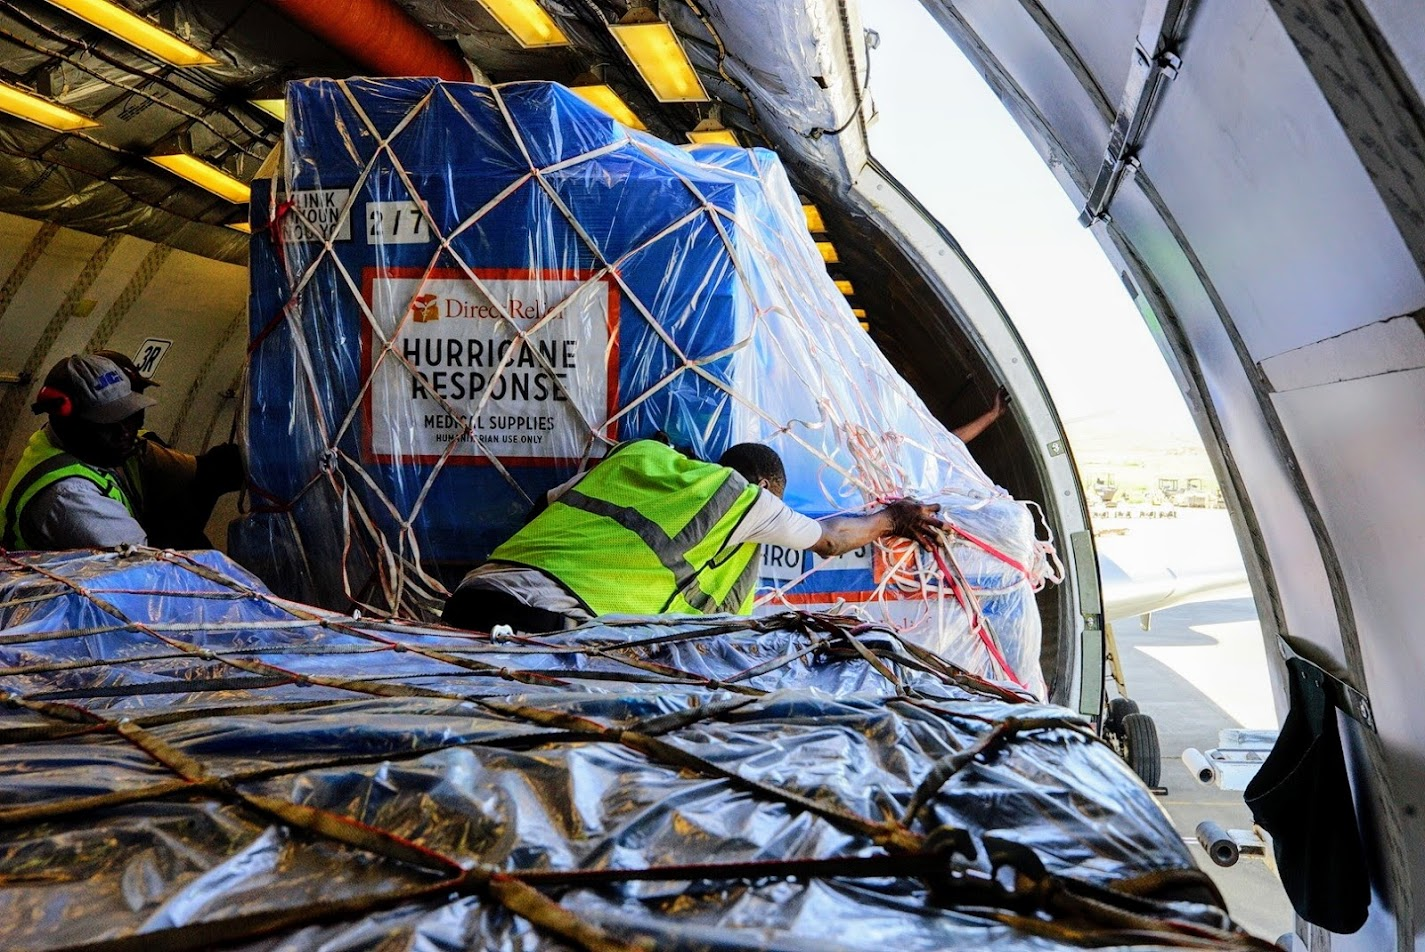 Medical aid is loaded onto a plane bound for Haiti after Hurricane Matthew devastated portions of the island in 2016. (Direct Relief photo)